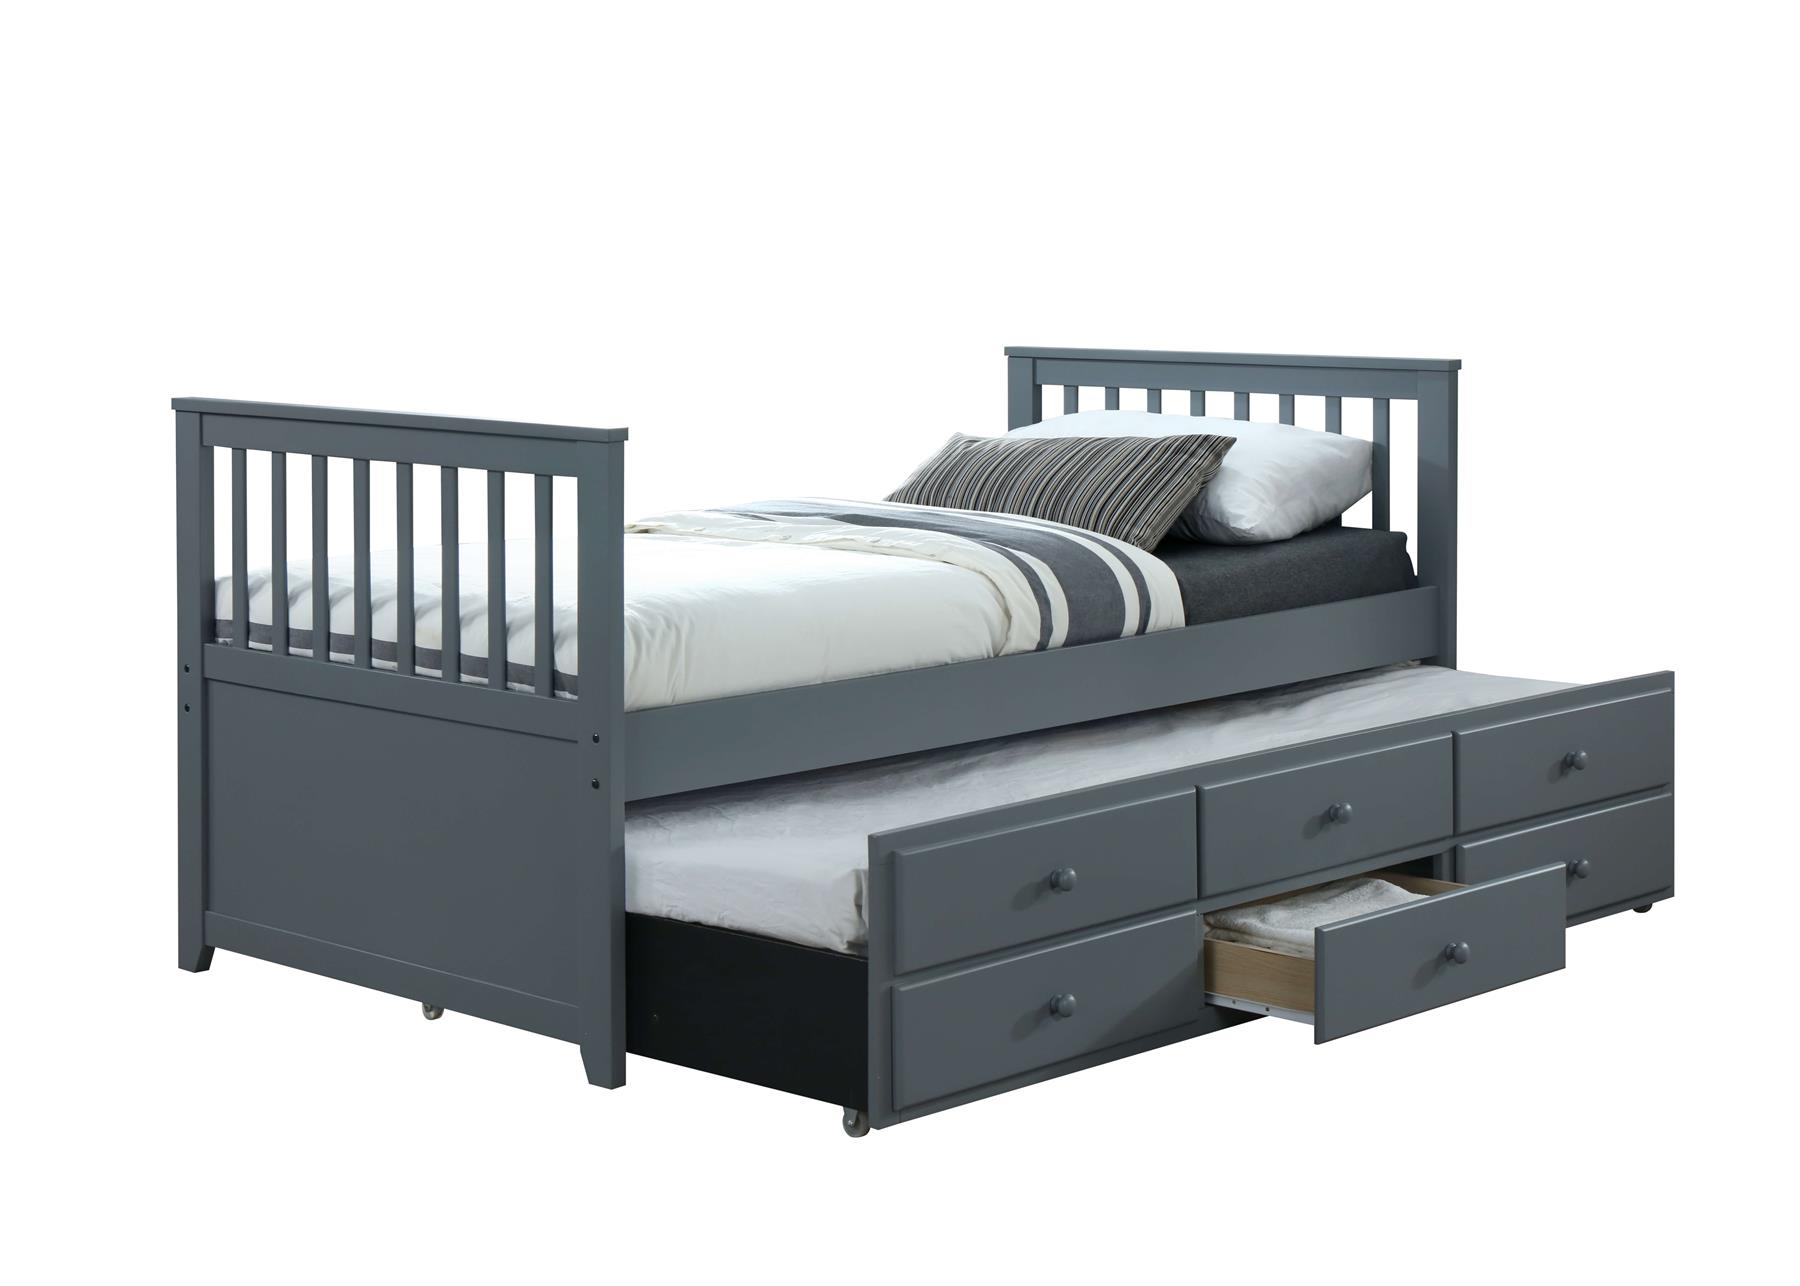 Picture of: Grey Captain S Bed 3ft Single Guest Bed Pull Out Trundle With Storage Drawer Ebay